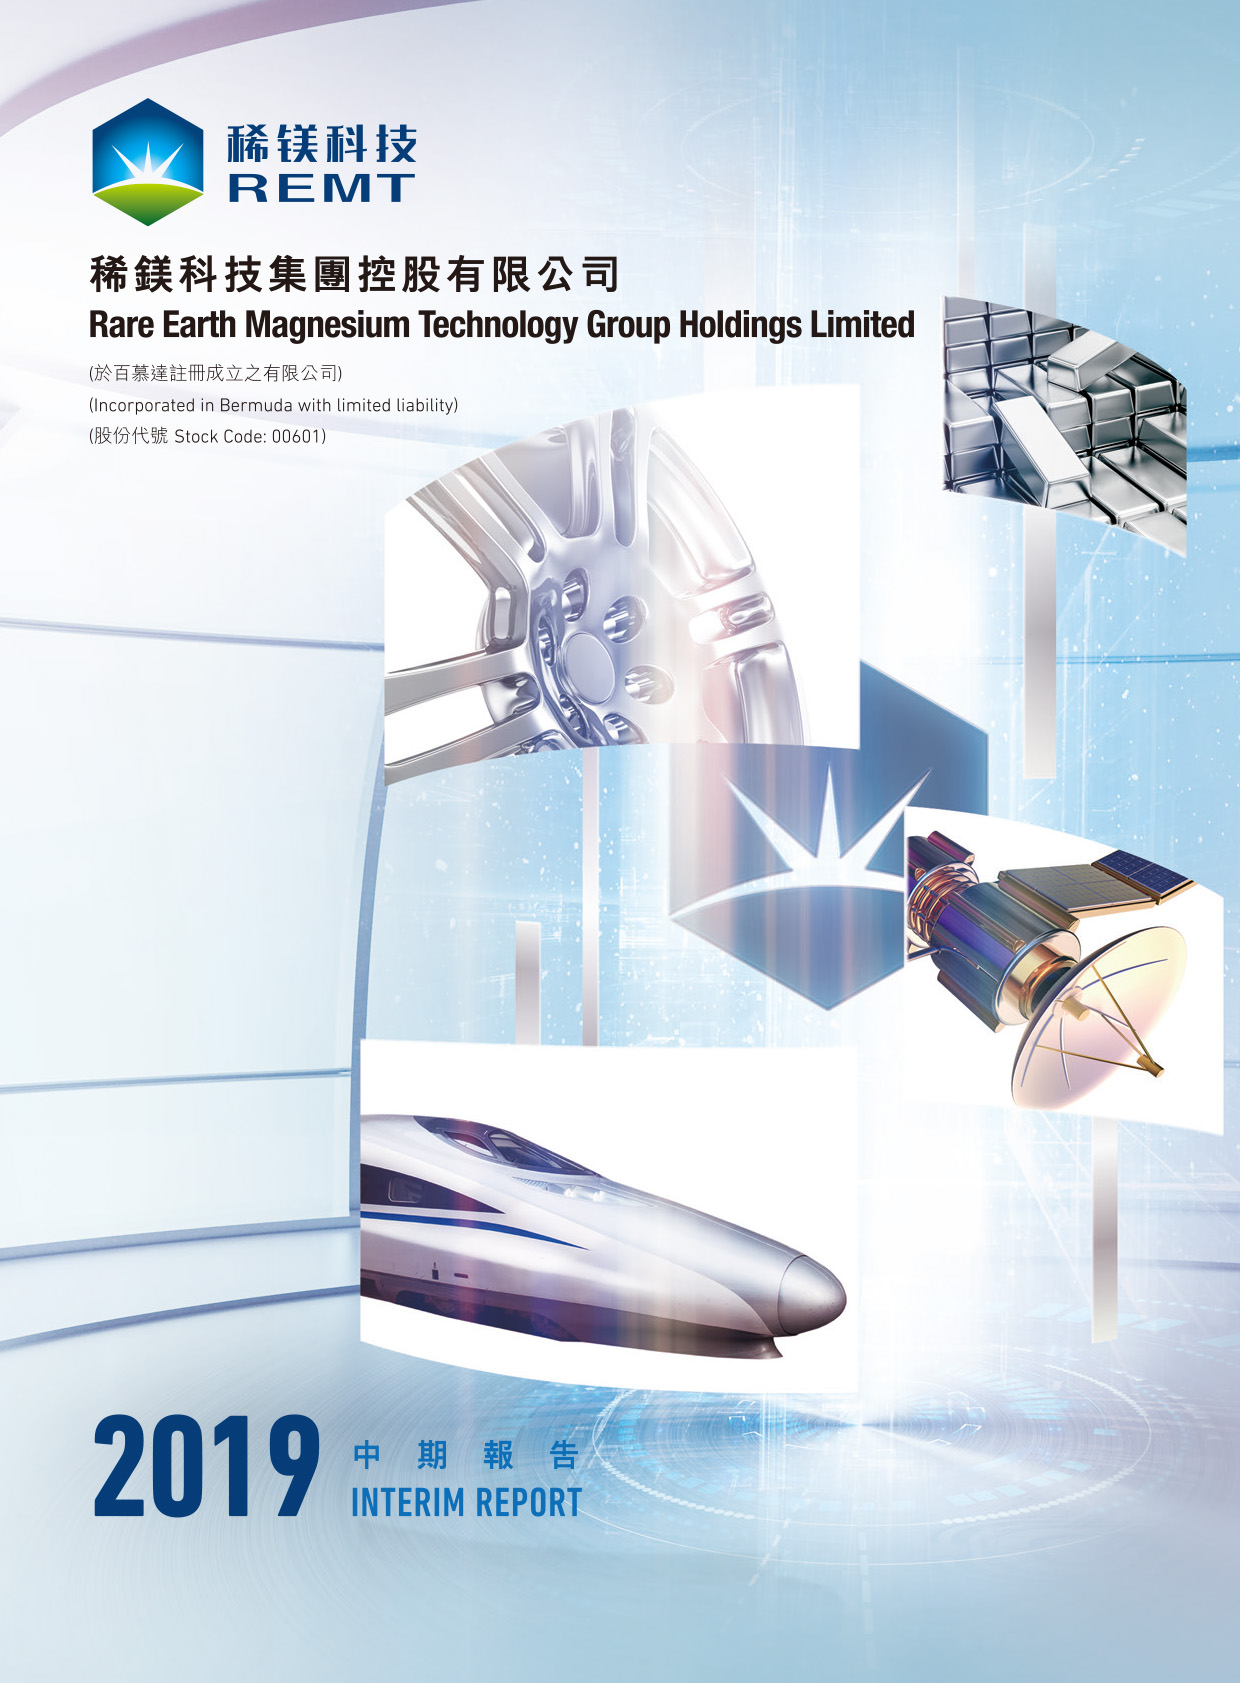 Rare Earth Magnesium Technology Group Holdings Limited